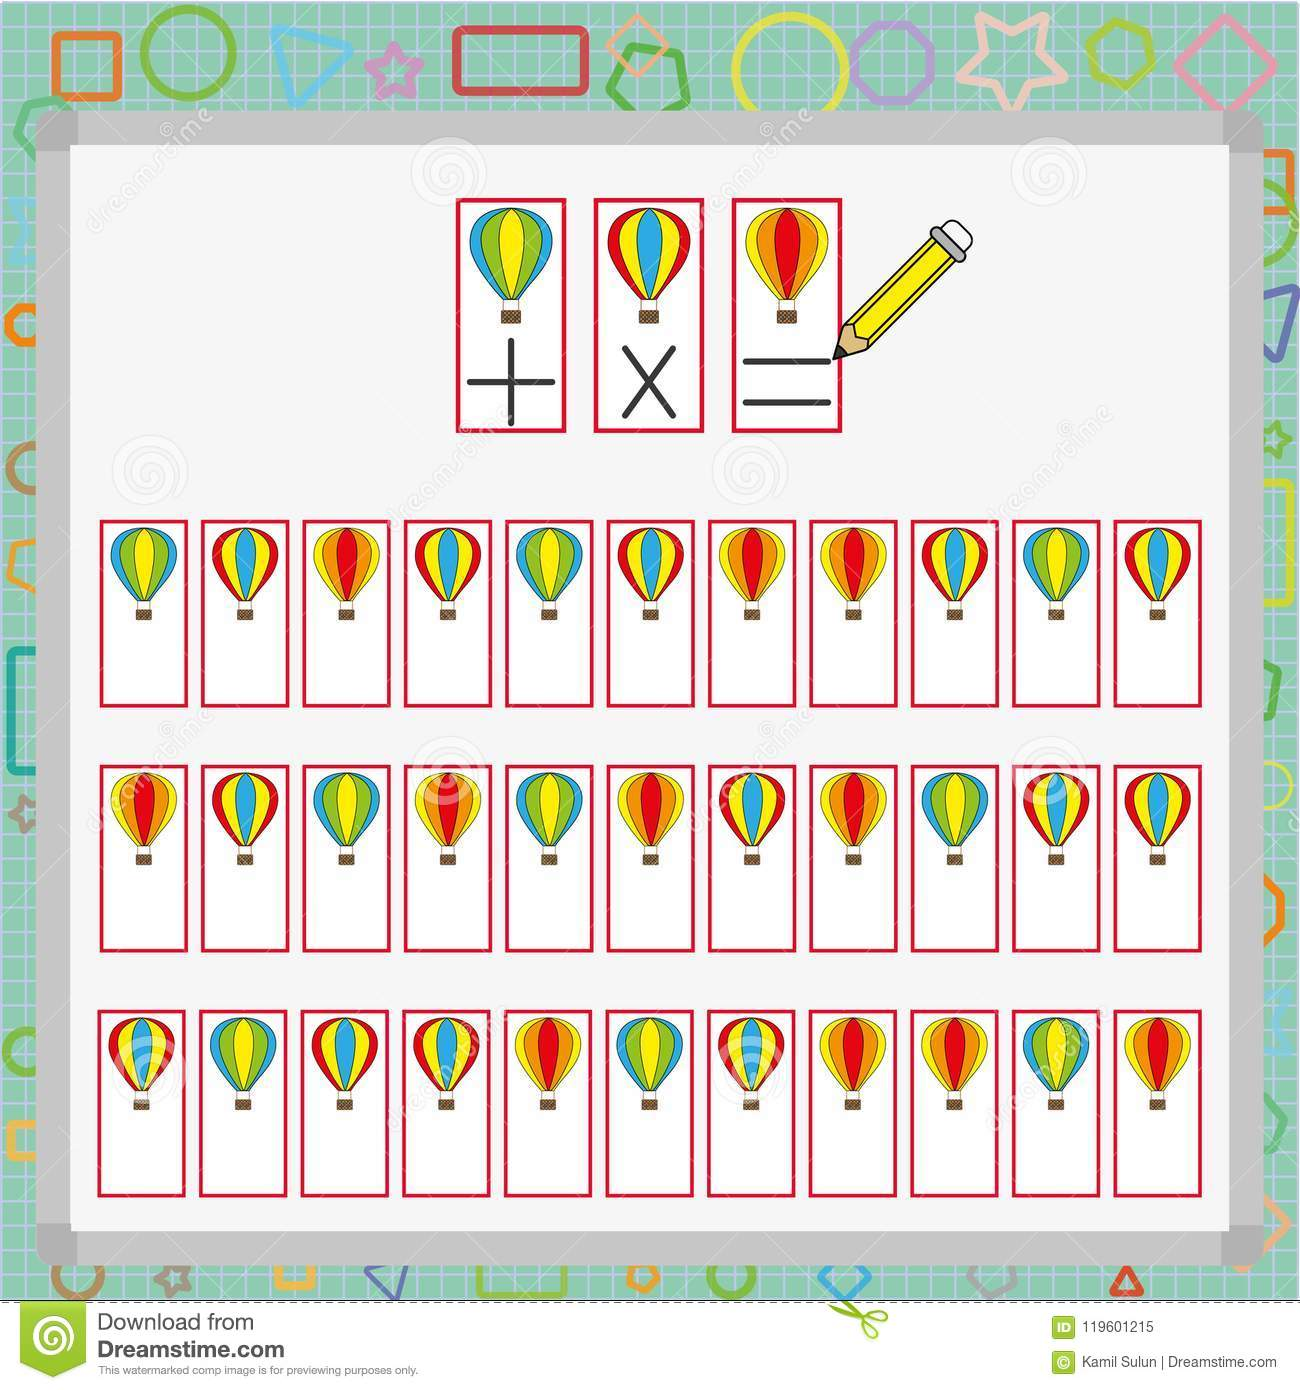 Visual Perception Game Perception Game For Child Attention Development Work For Students Stock